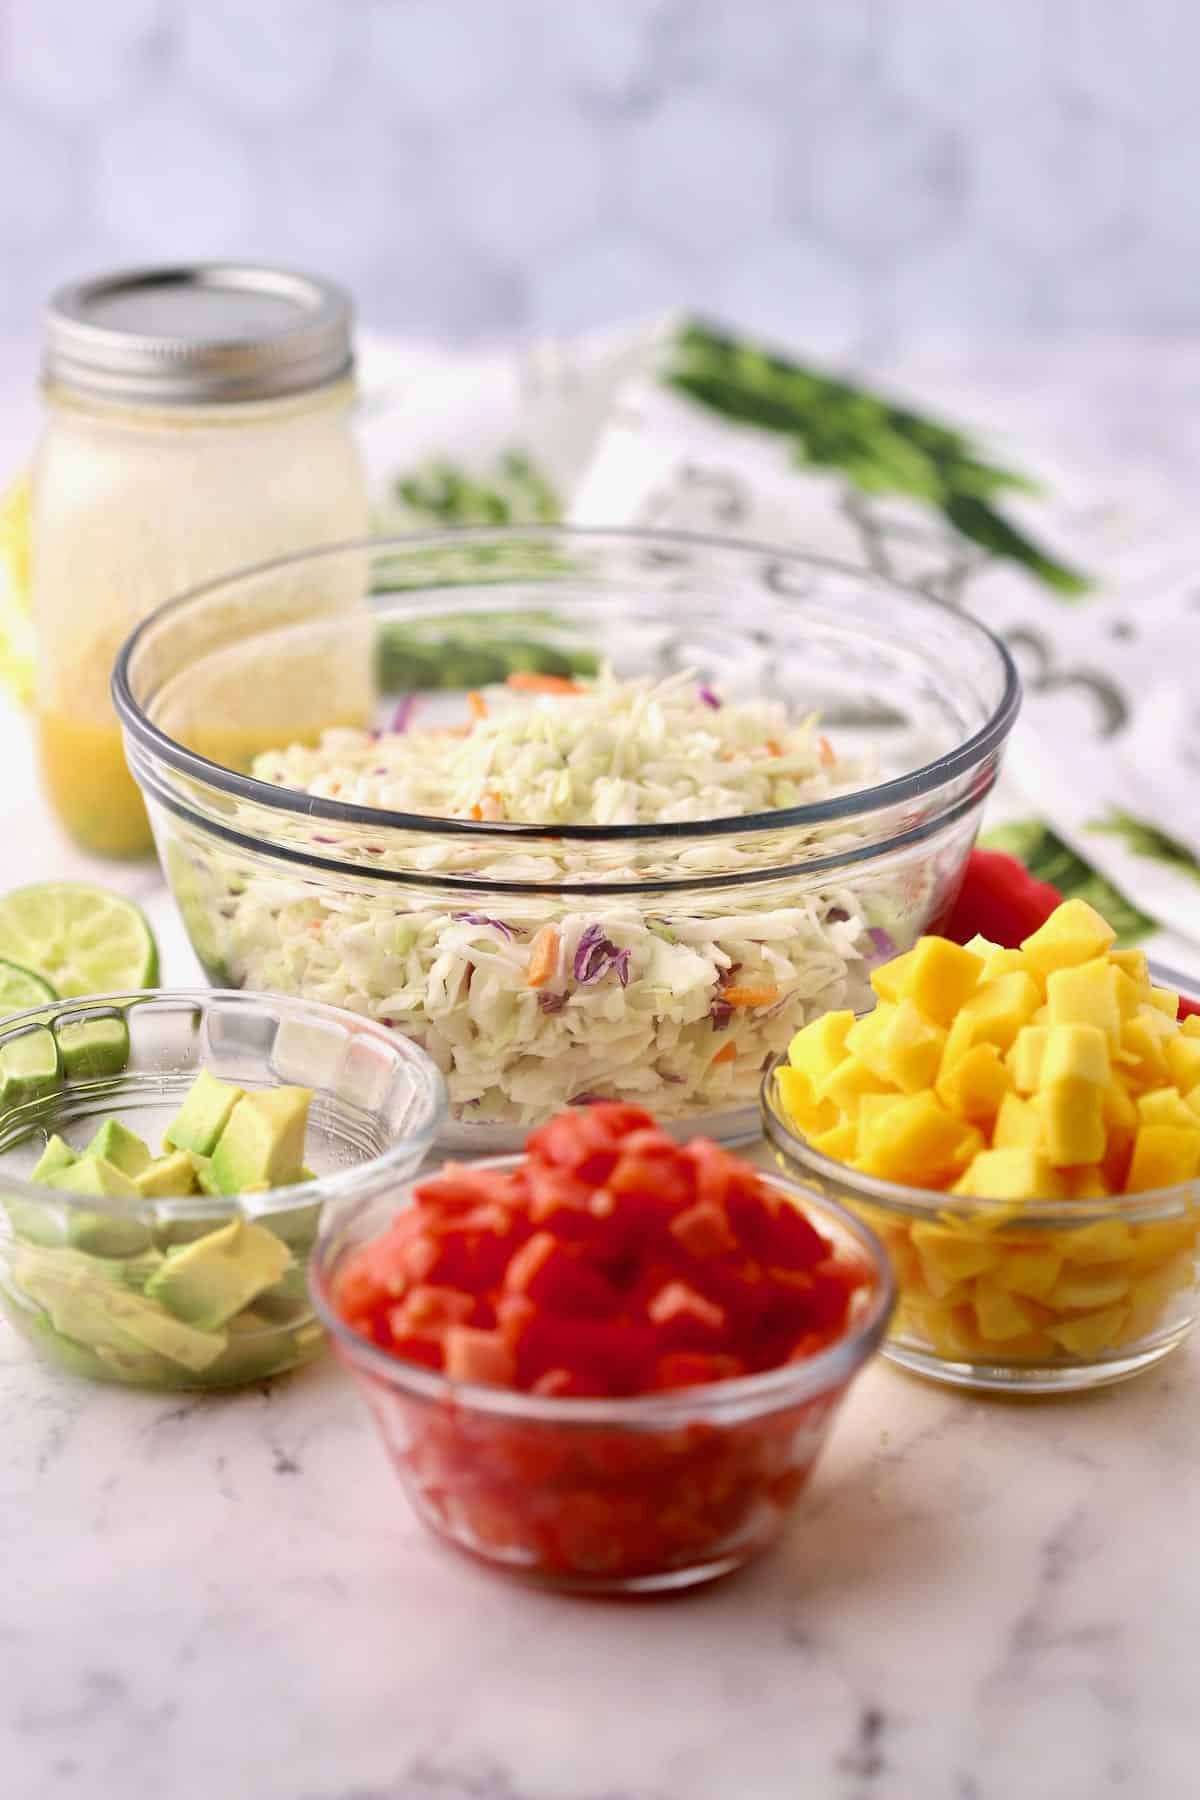 Coleslaw in a bowl with chopped mango and tomatoes.